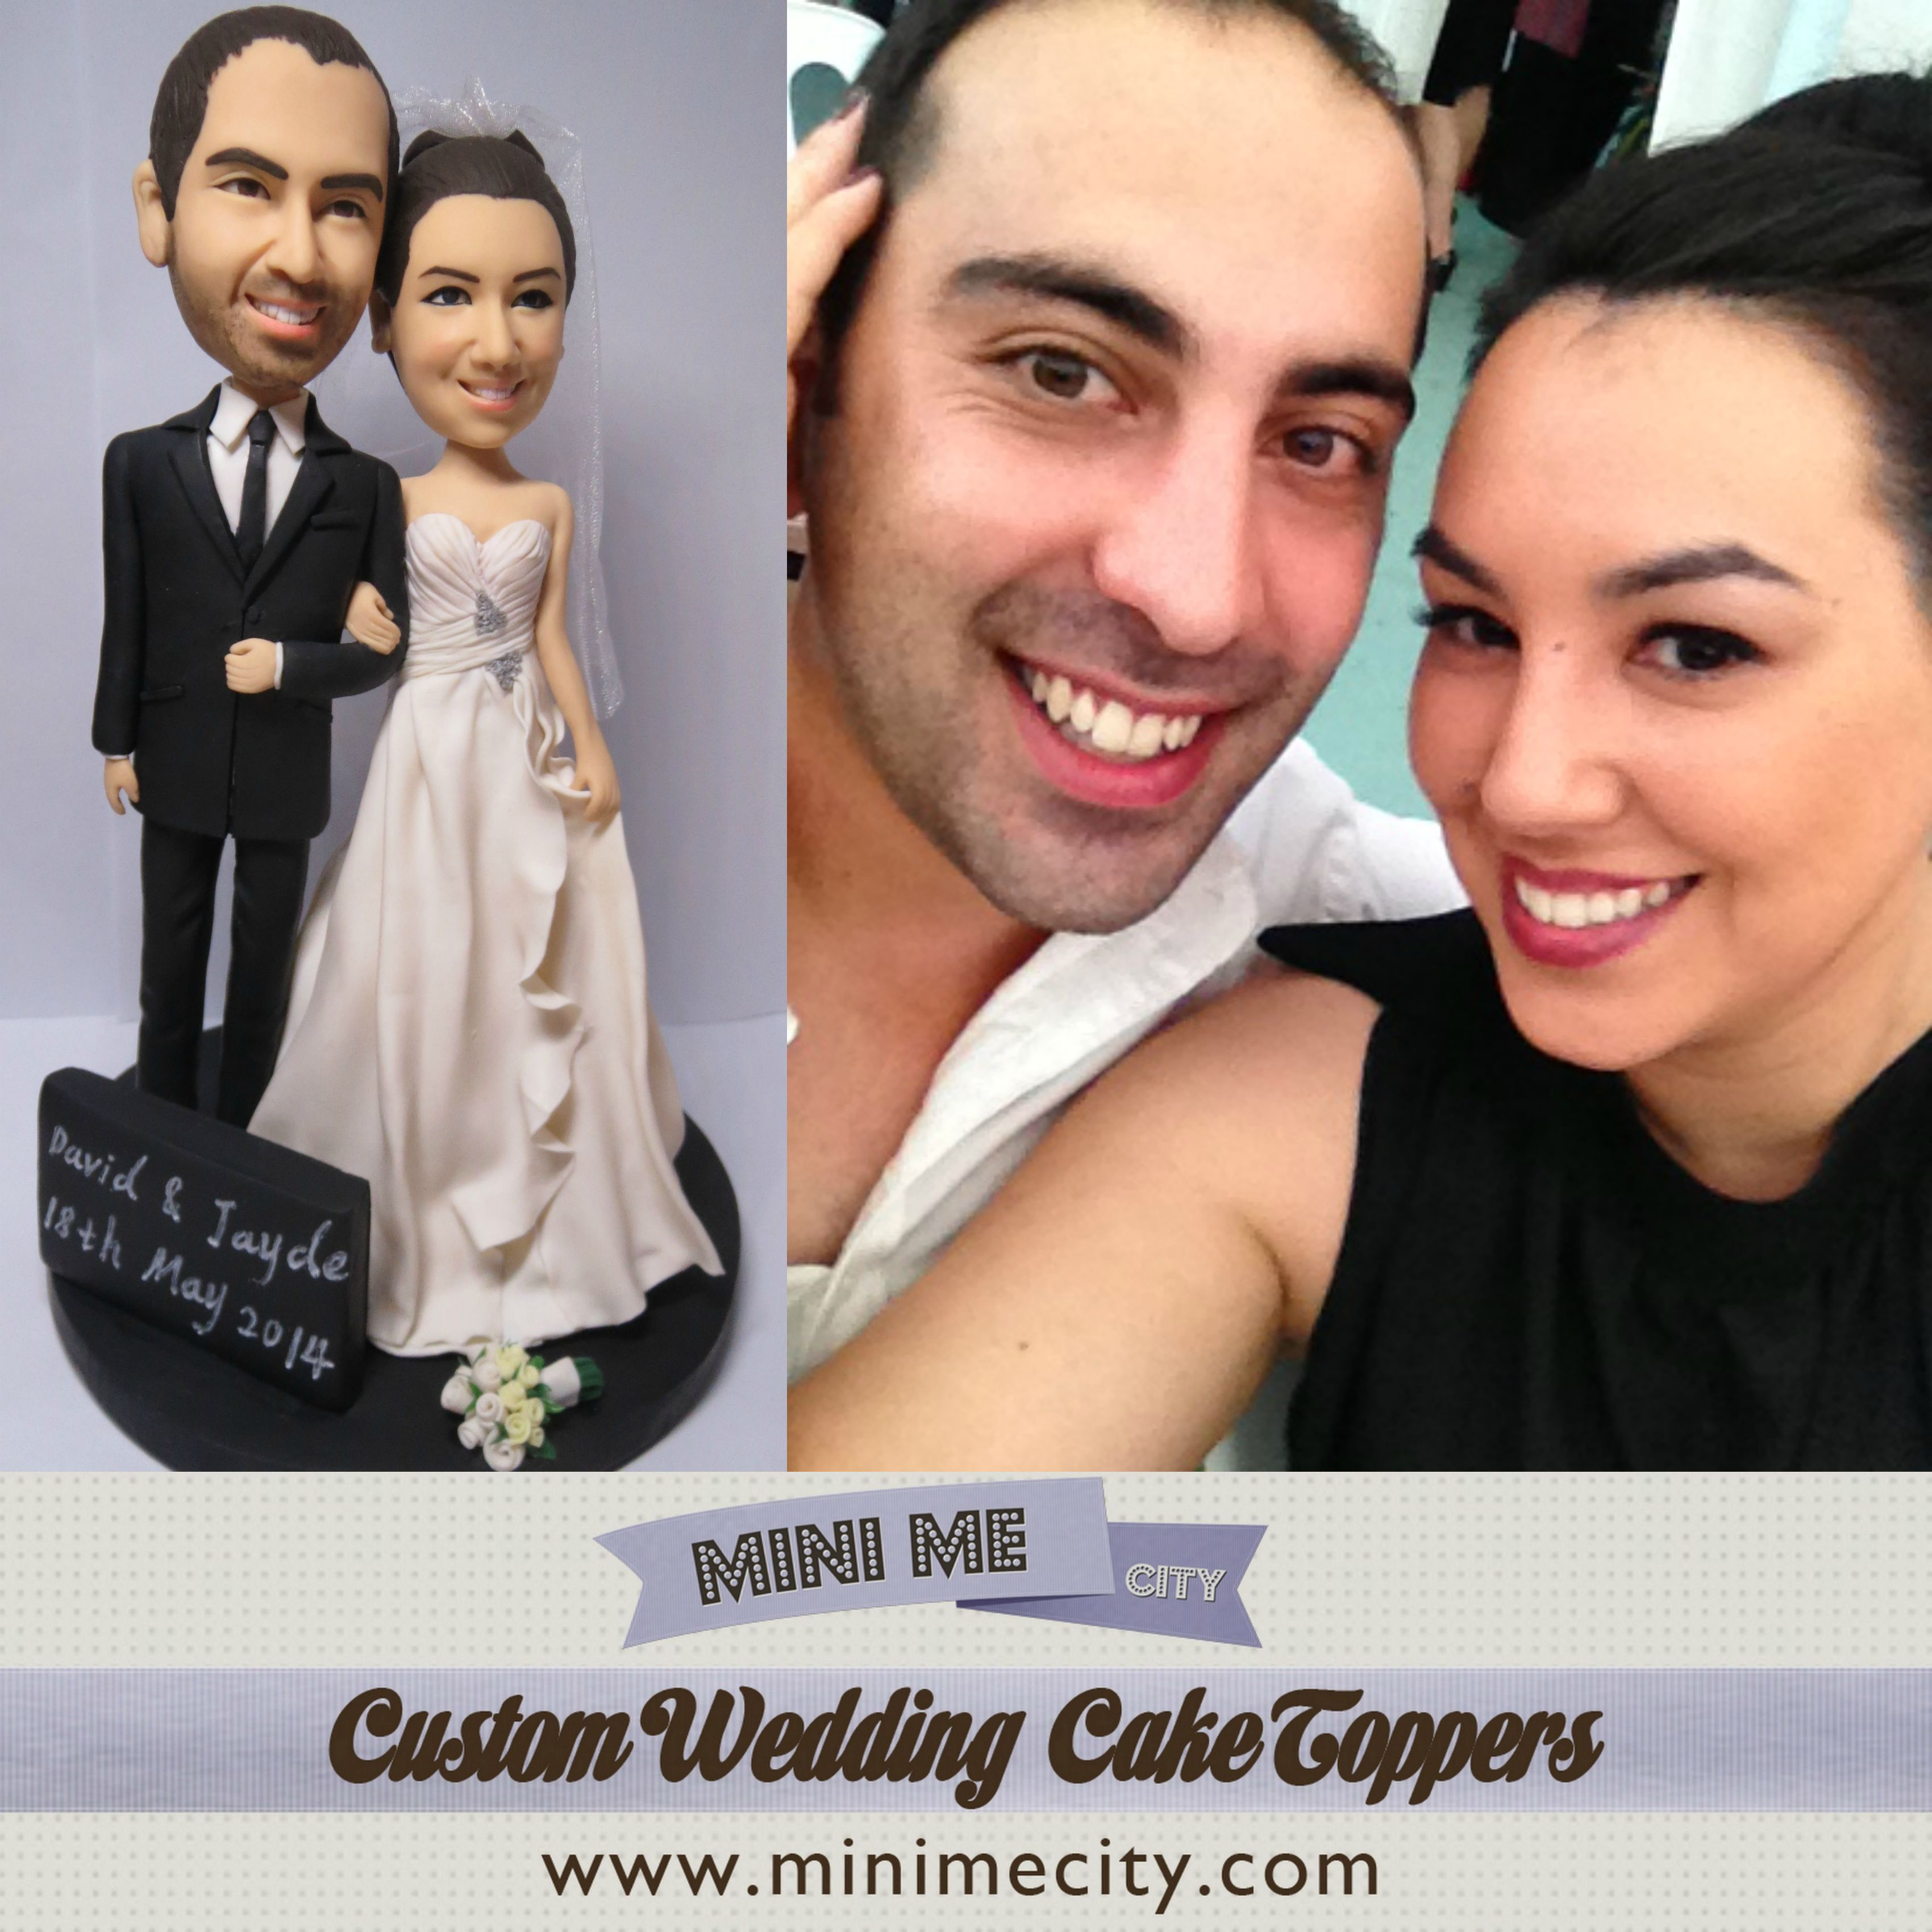 Custom Cake Toppers to look like the bride and groom!